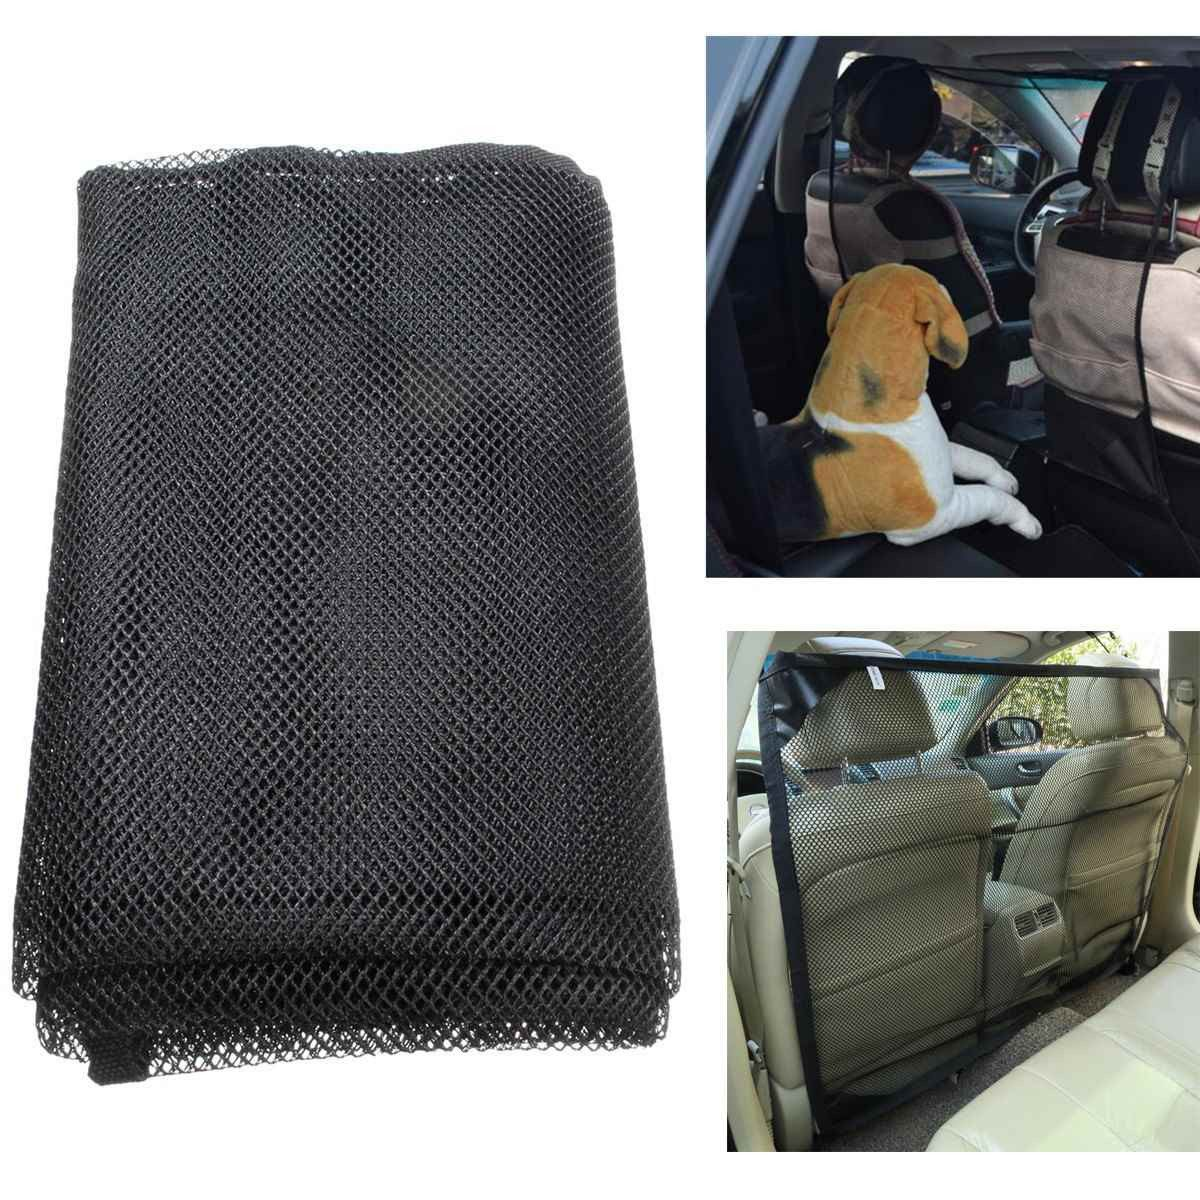 Dog Car Net Barrier to Keep The dog in Back Seat Cat